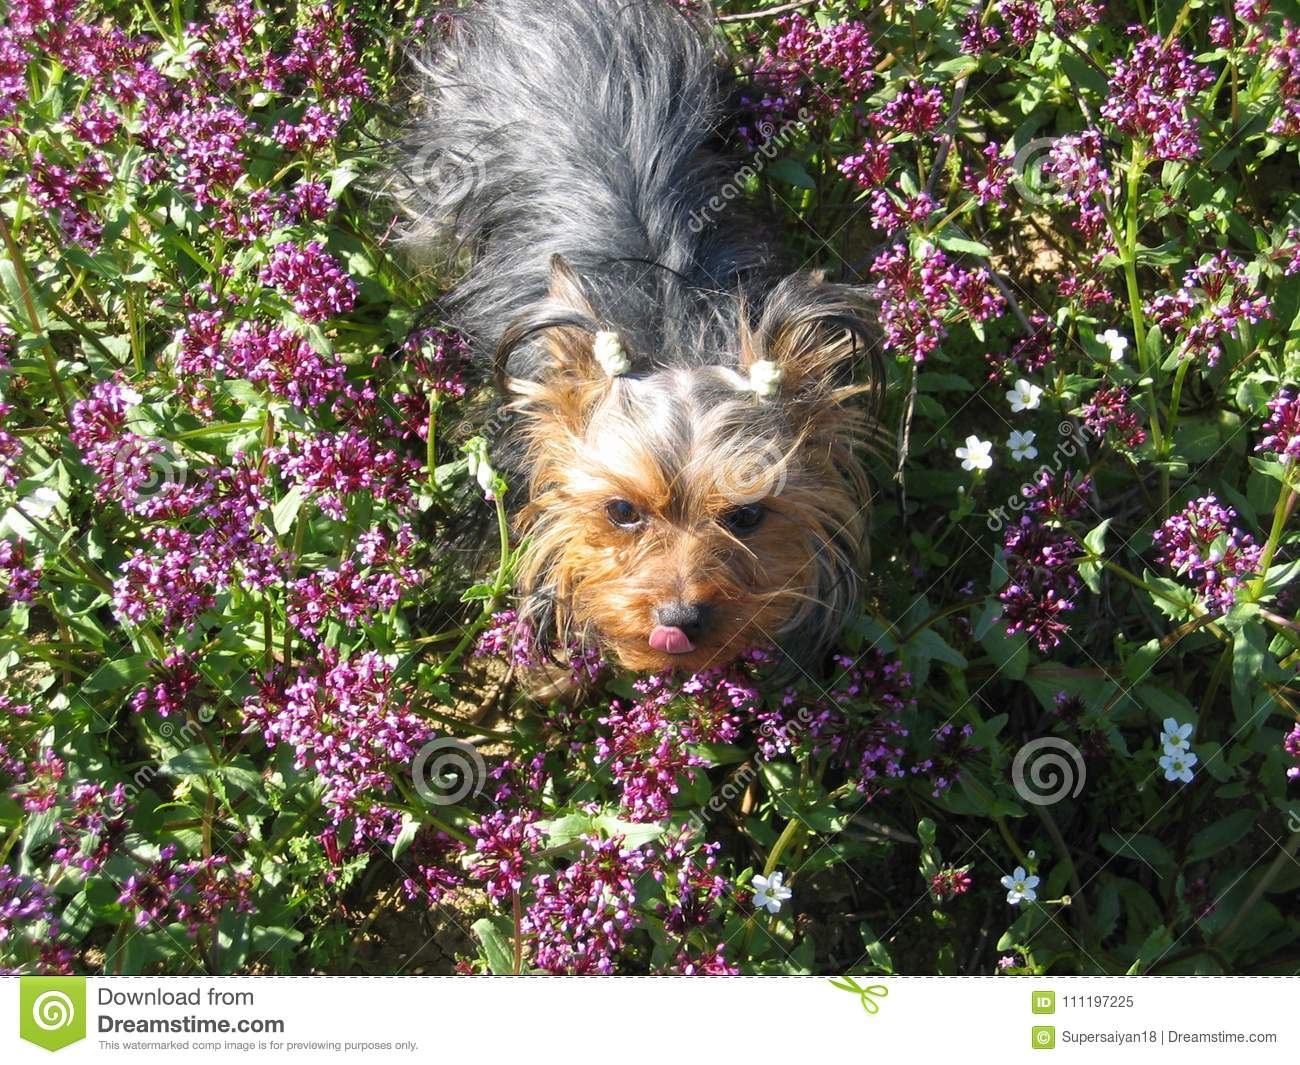 Very cute dog Yorkshire terrier between flowers